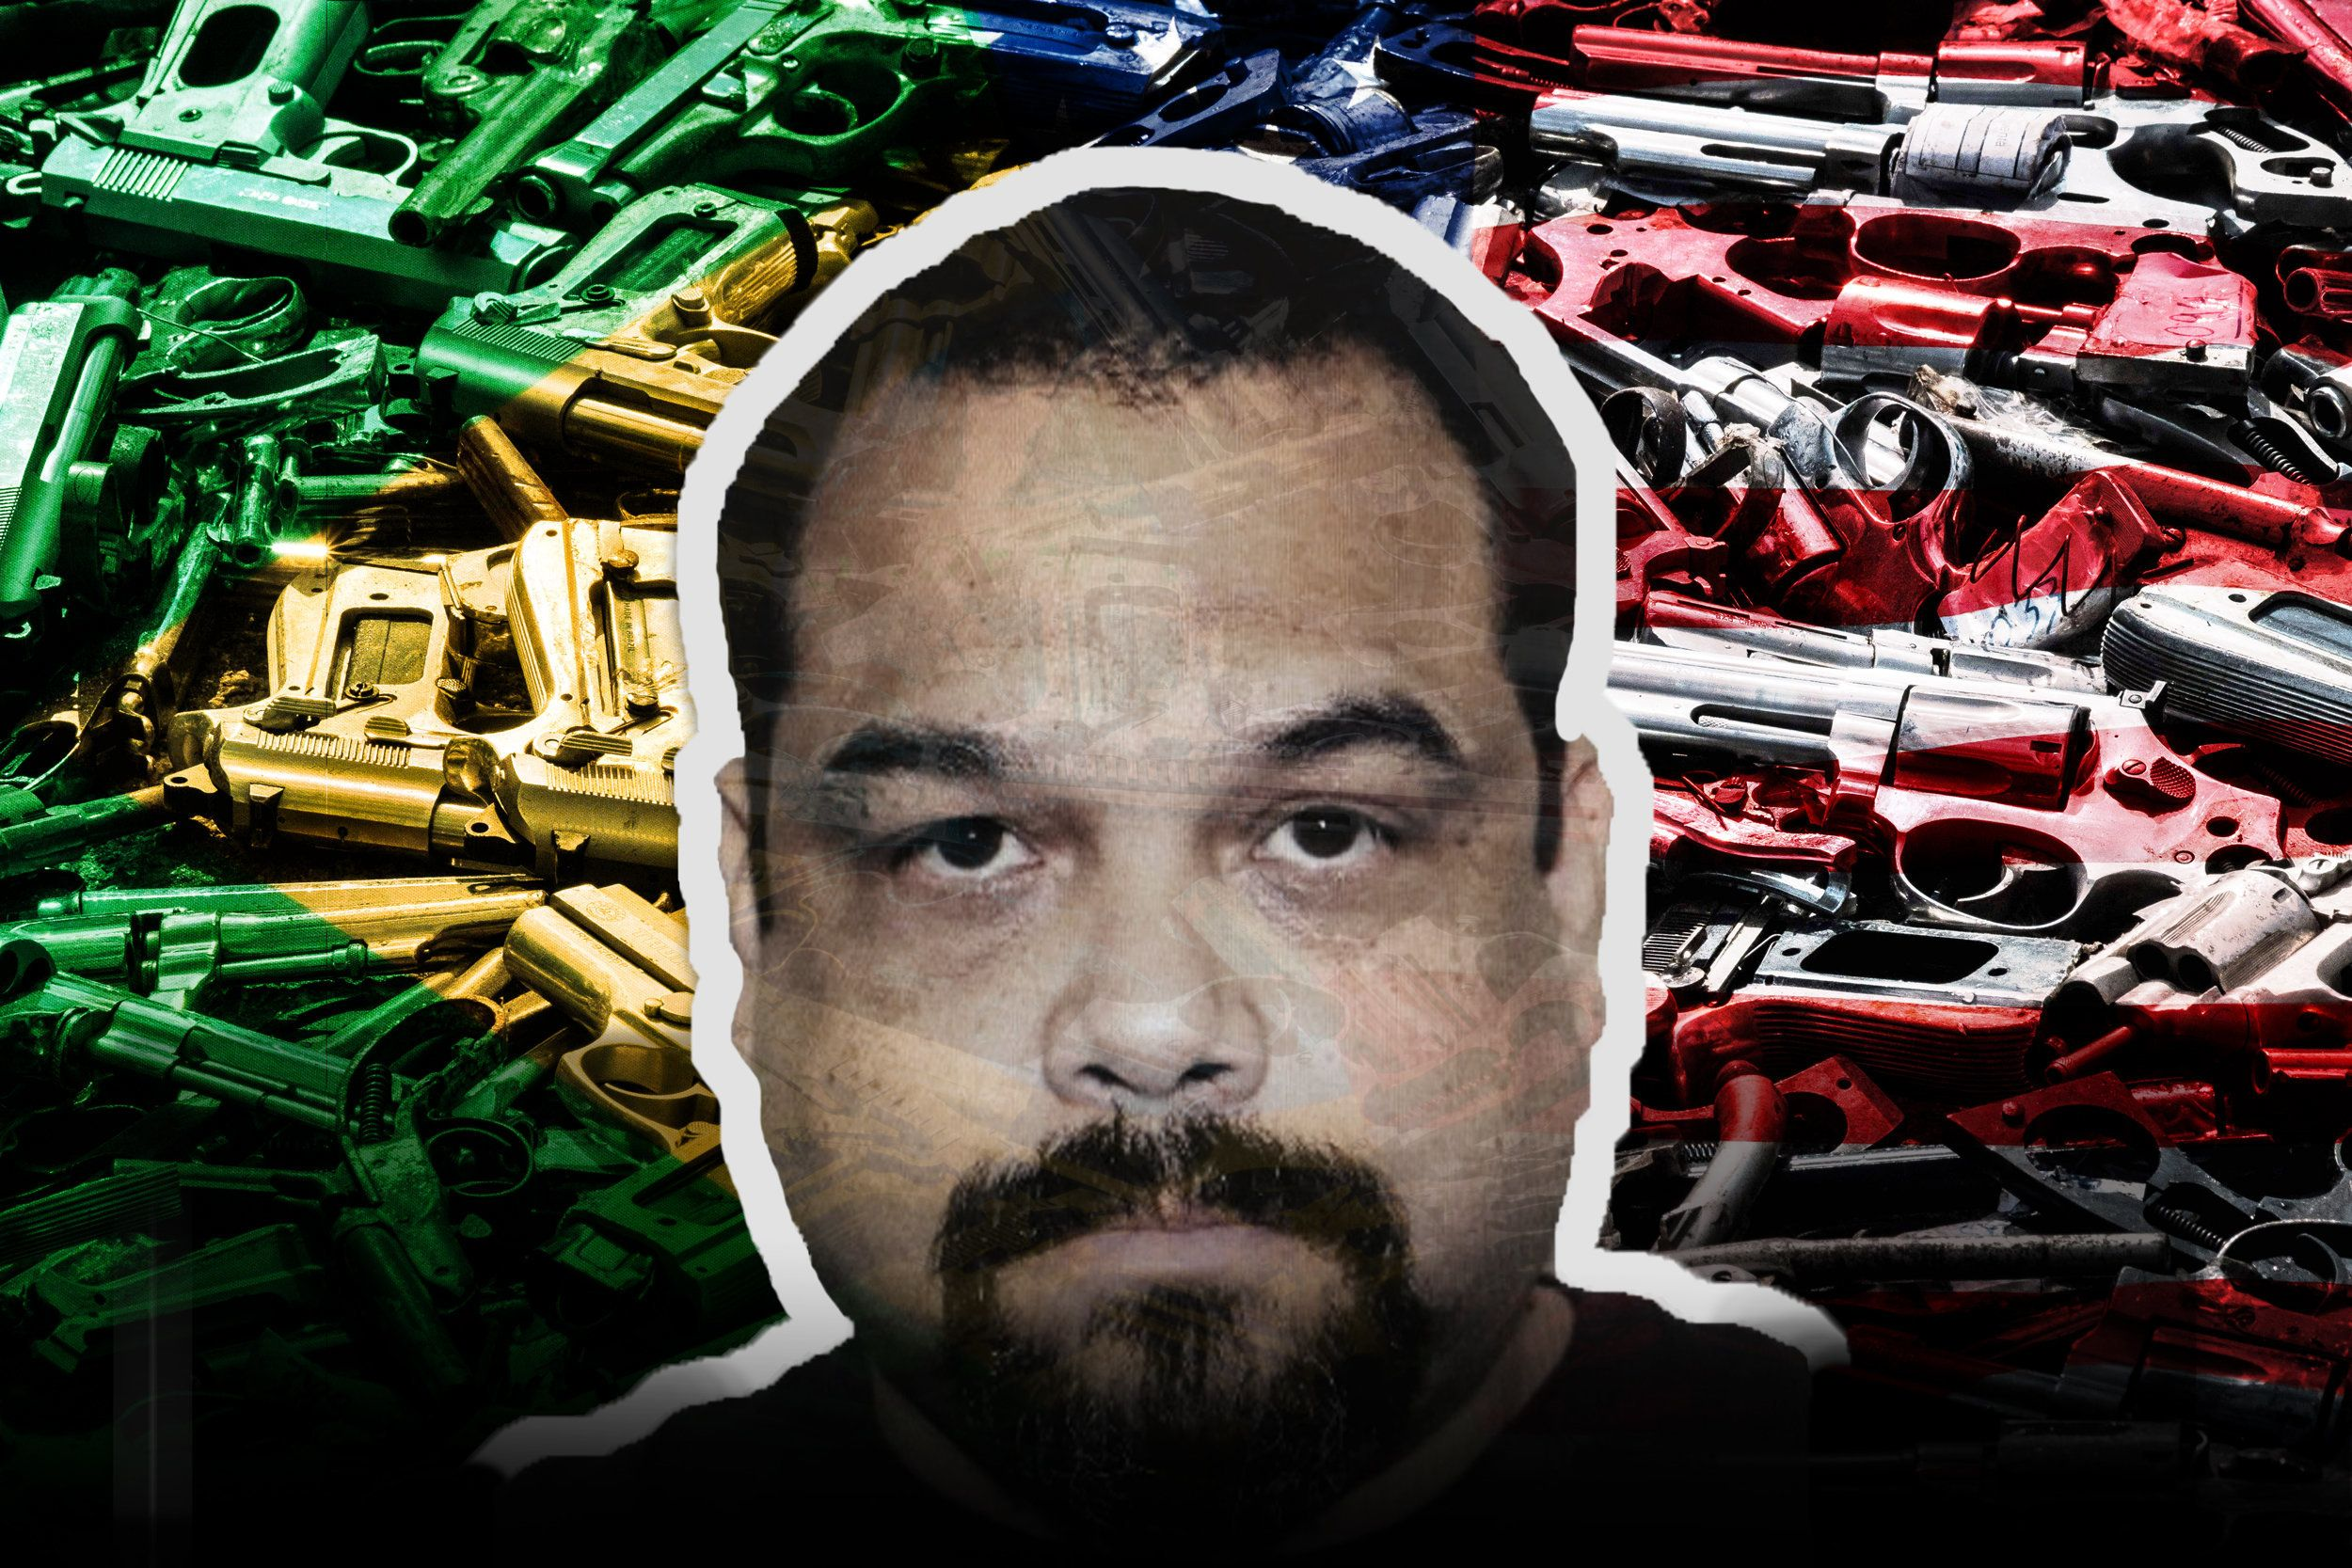 How Brazil's 'Lord Of Guns' Armed Rio's Drug War With U.S. Weapons